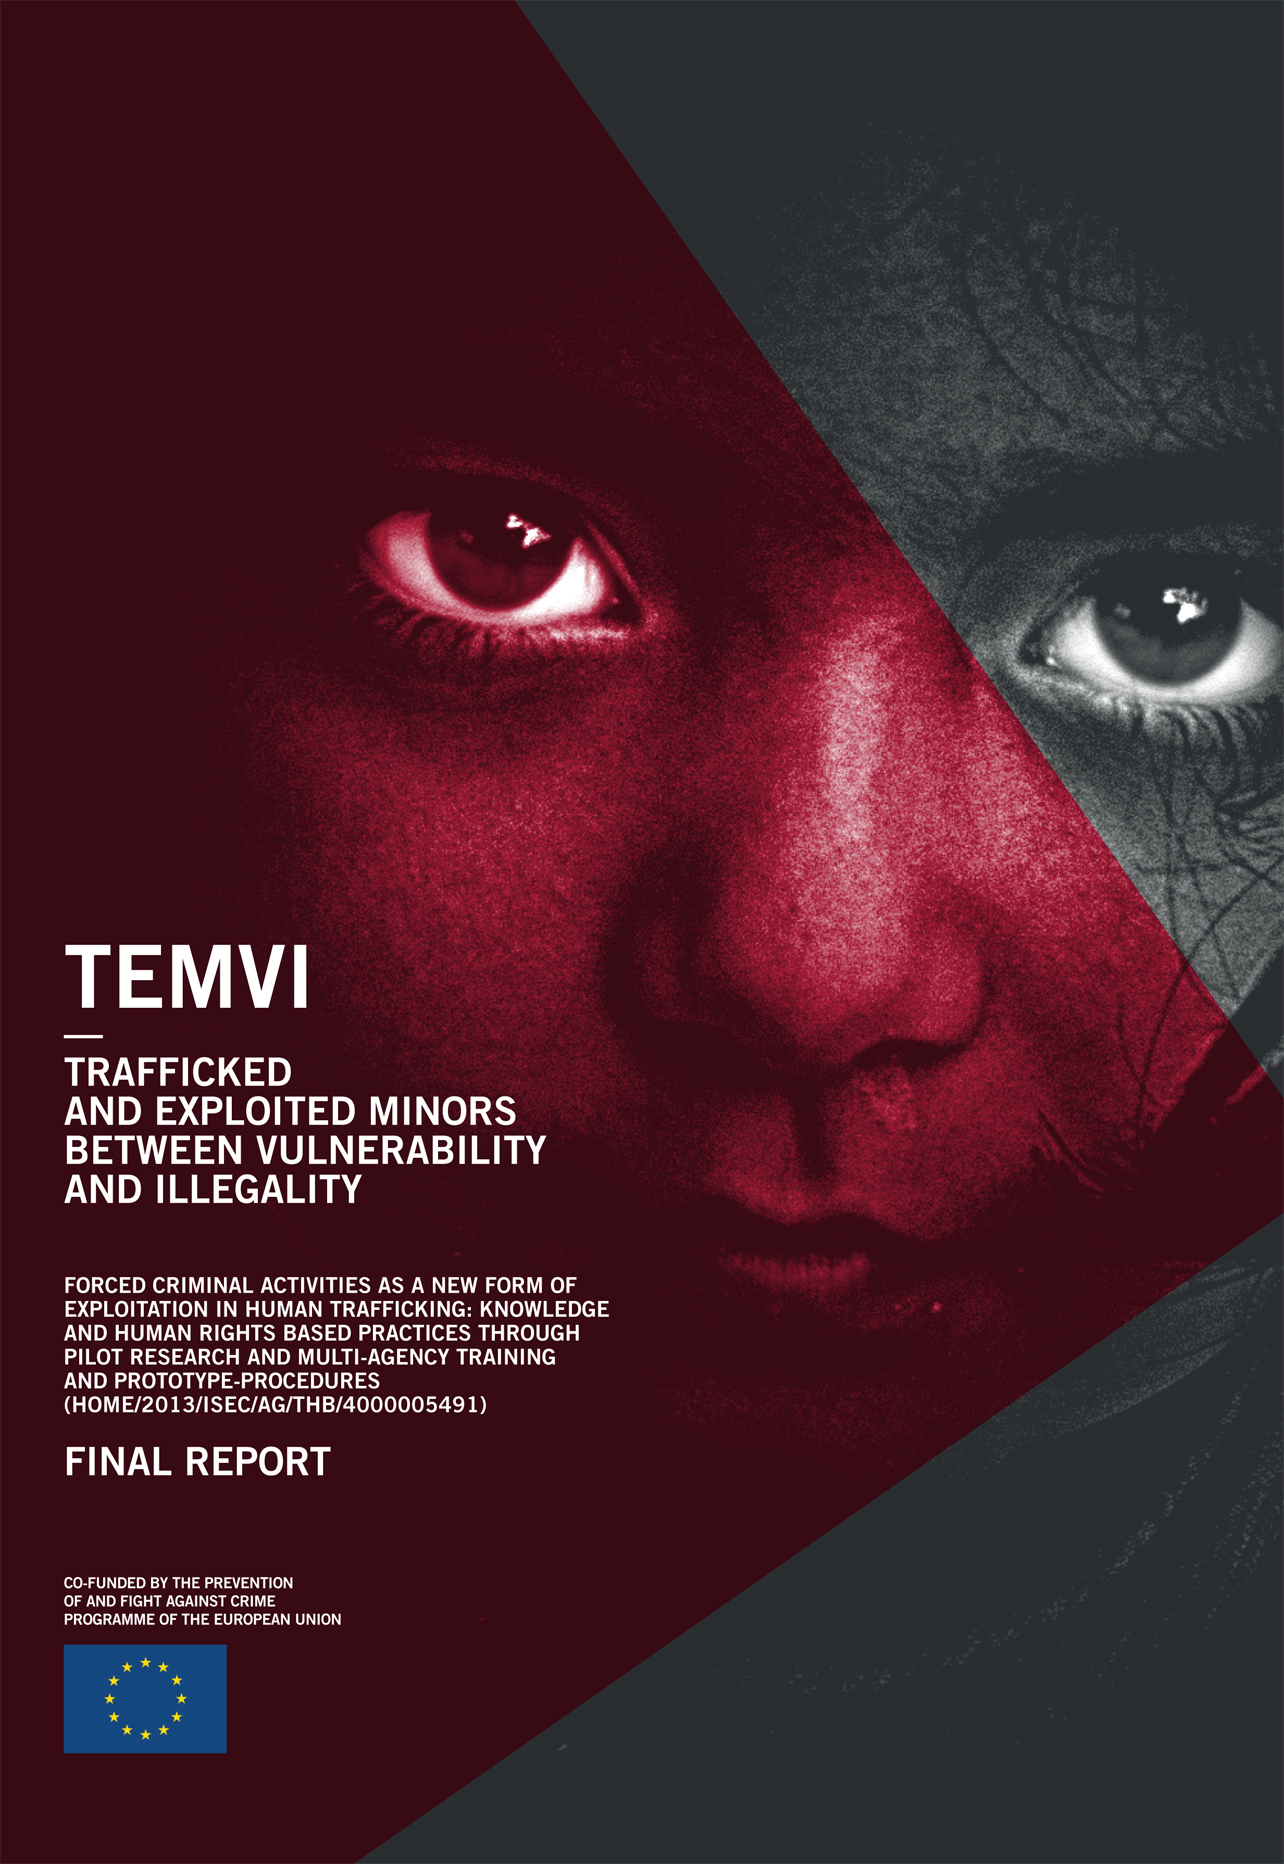 Cover of the TEMVI final report in English